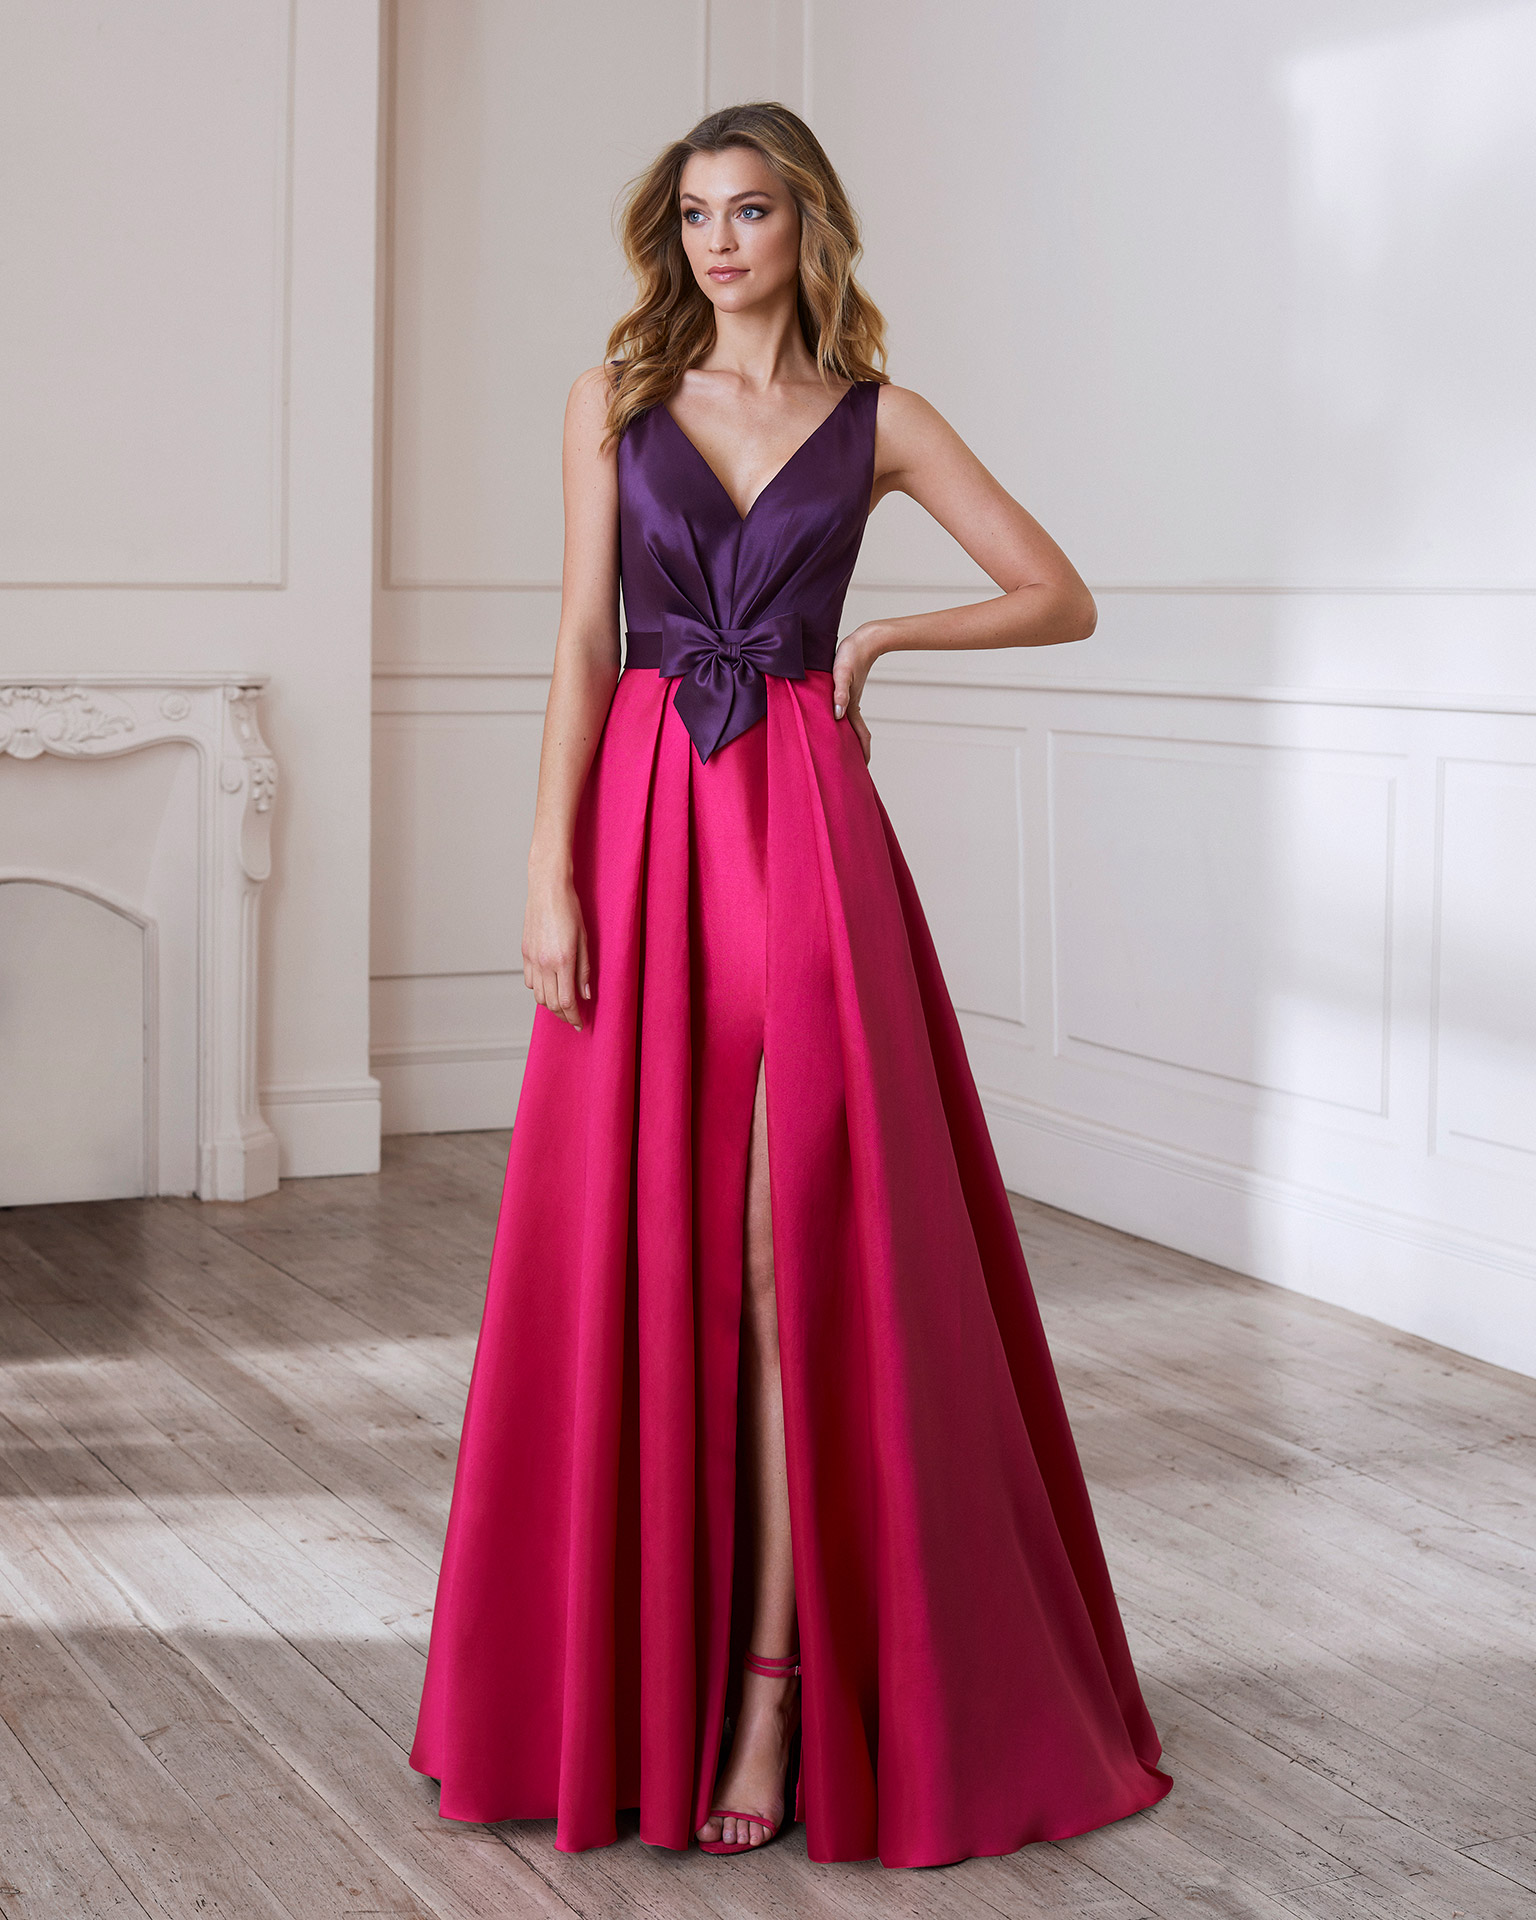 Print cocktail dress. V-neckline with bow at the waist. 2020 MARFIL BARCELONA Collection.